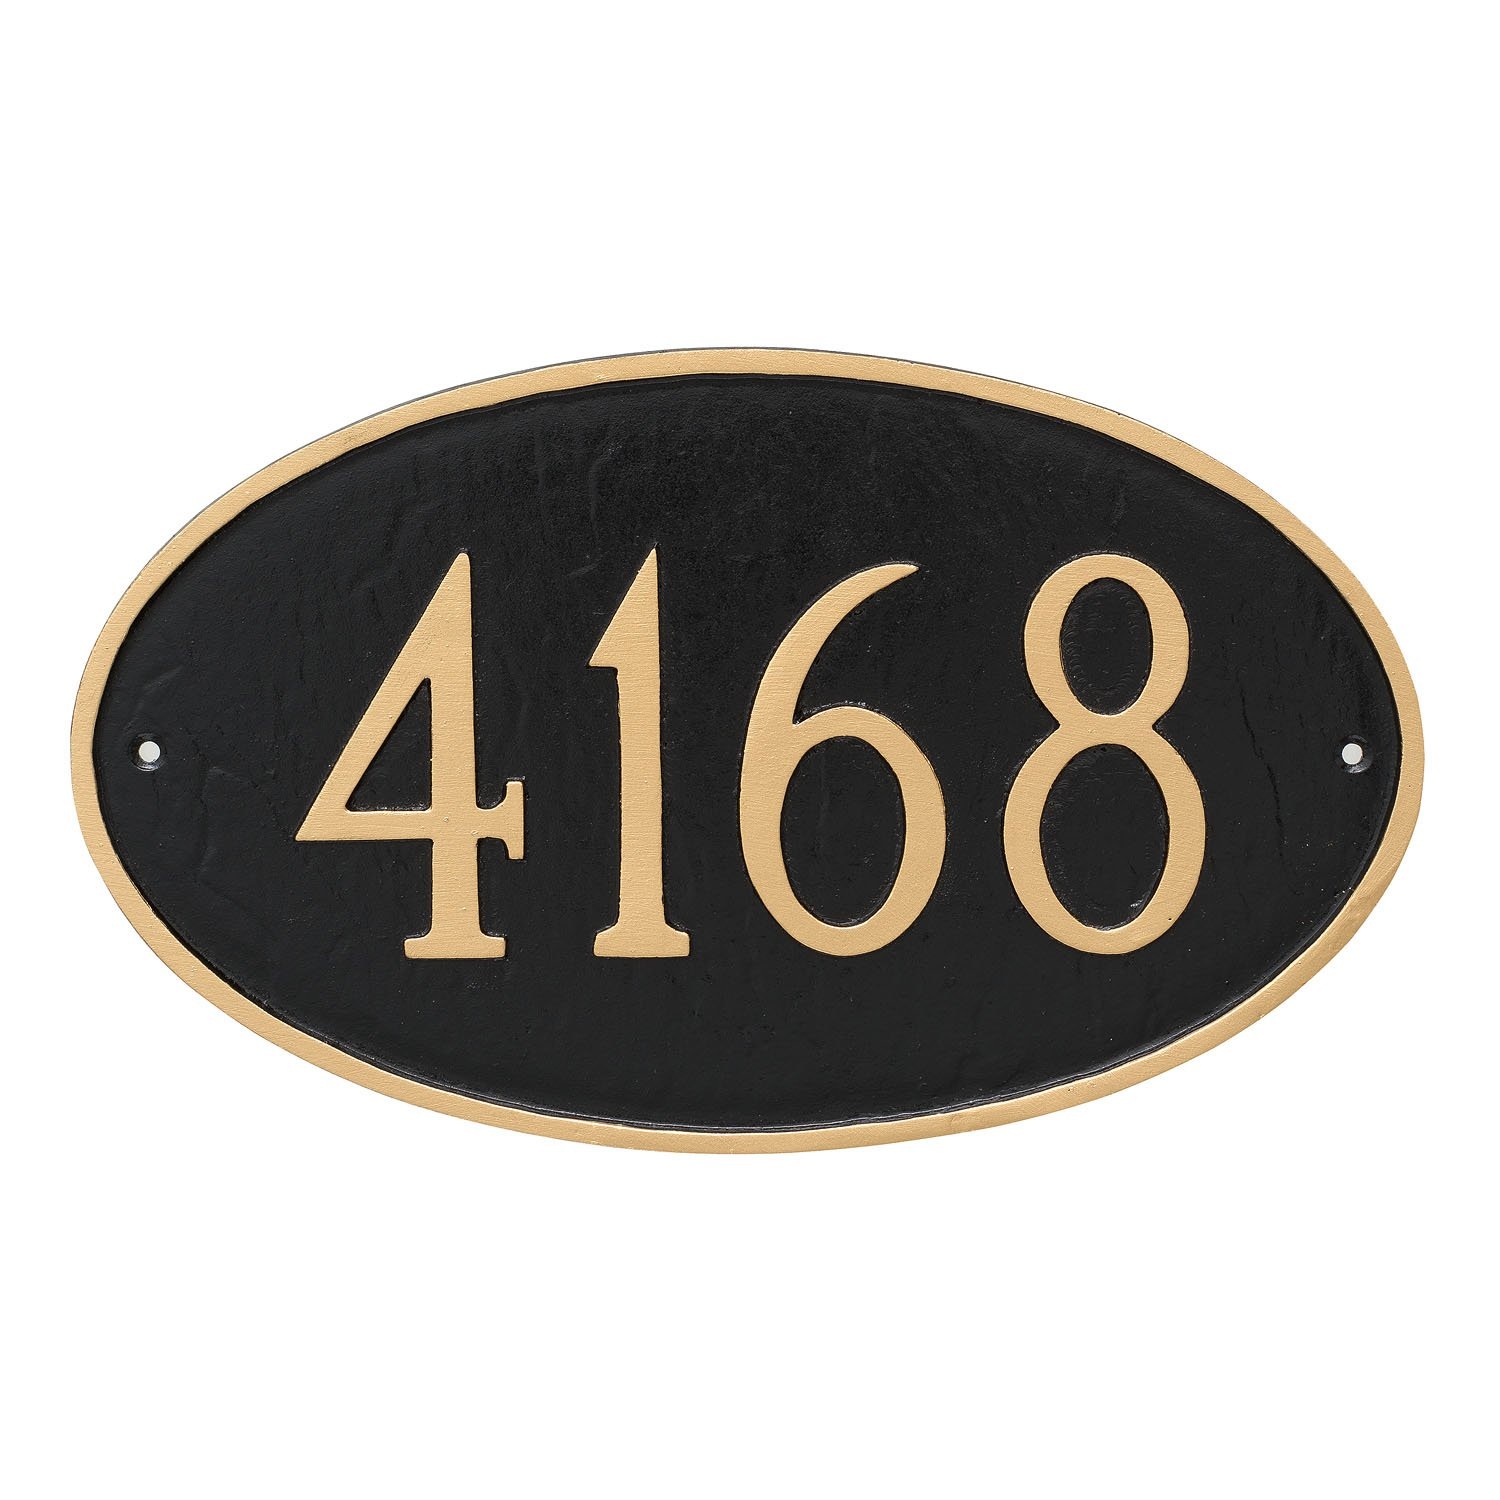 Montague Metal 8.5'' x 13.75'' Classic Oval Address Sign Plaque, Standard, Aged Bronze/Gold by Montague Metal